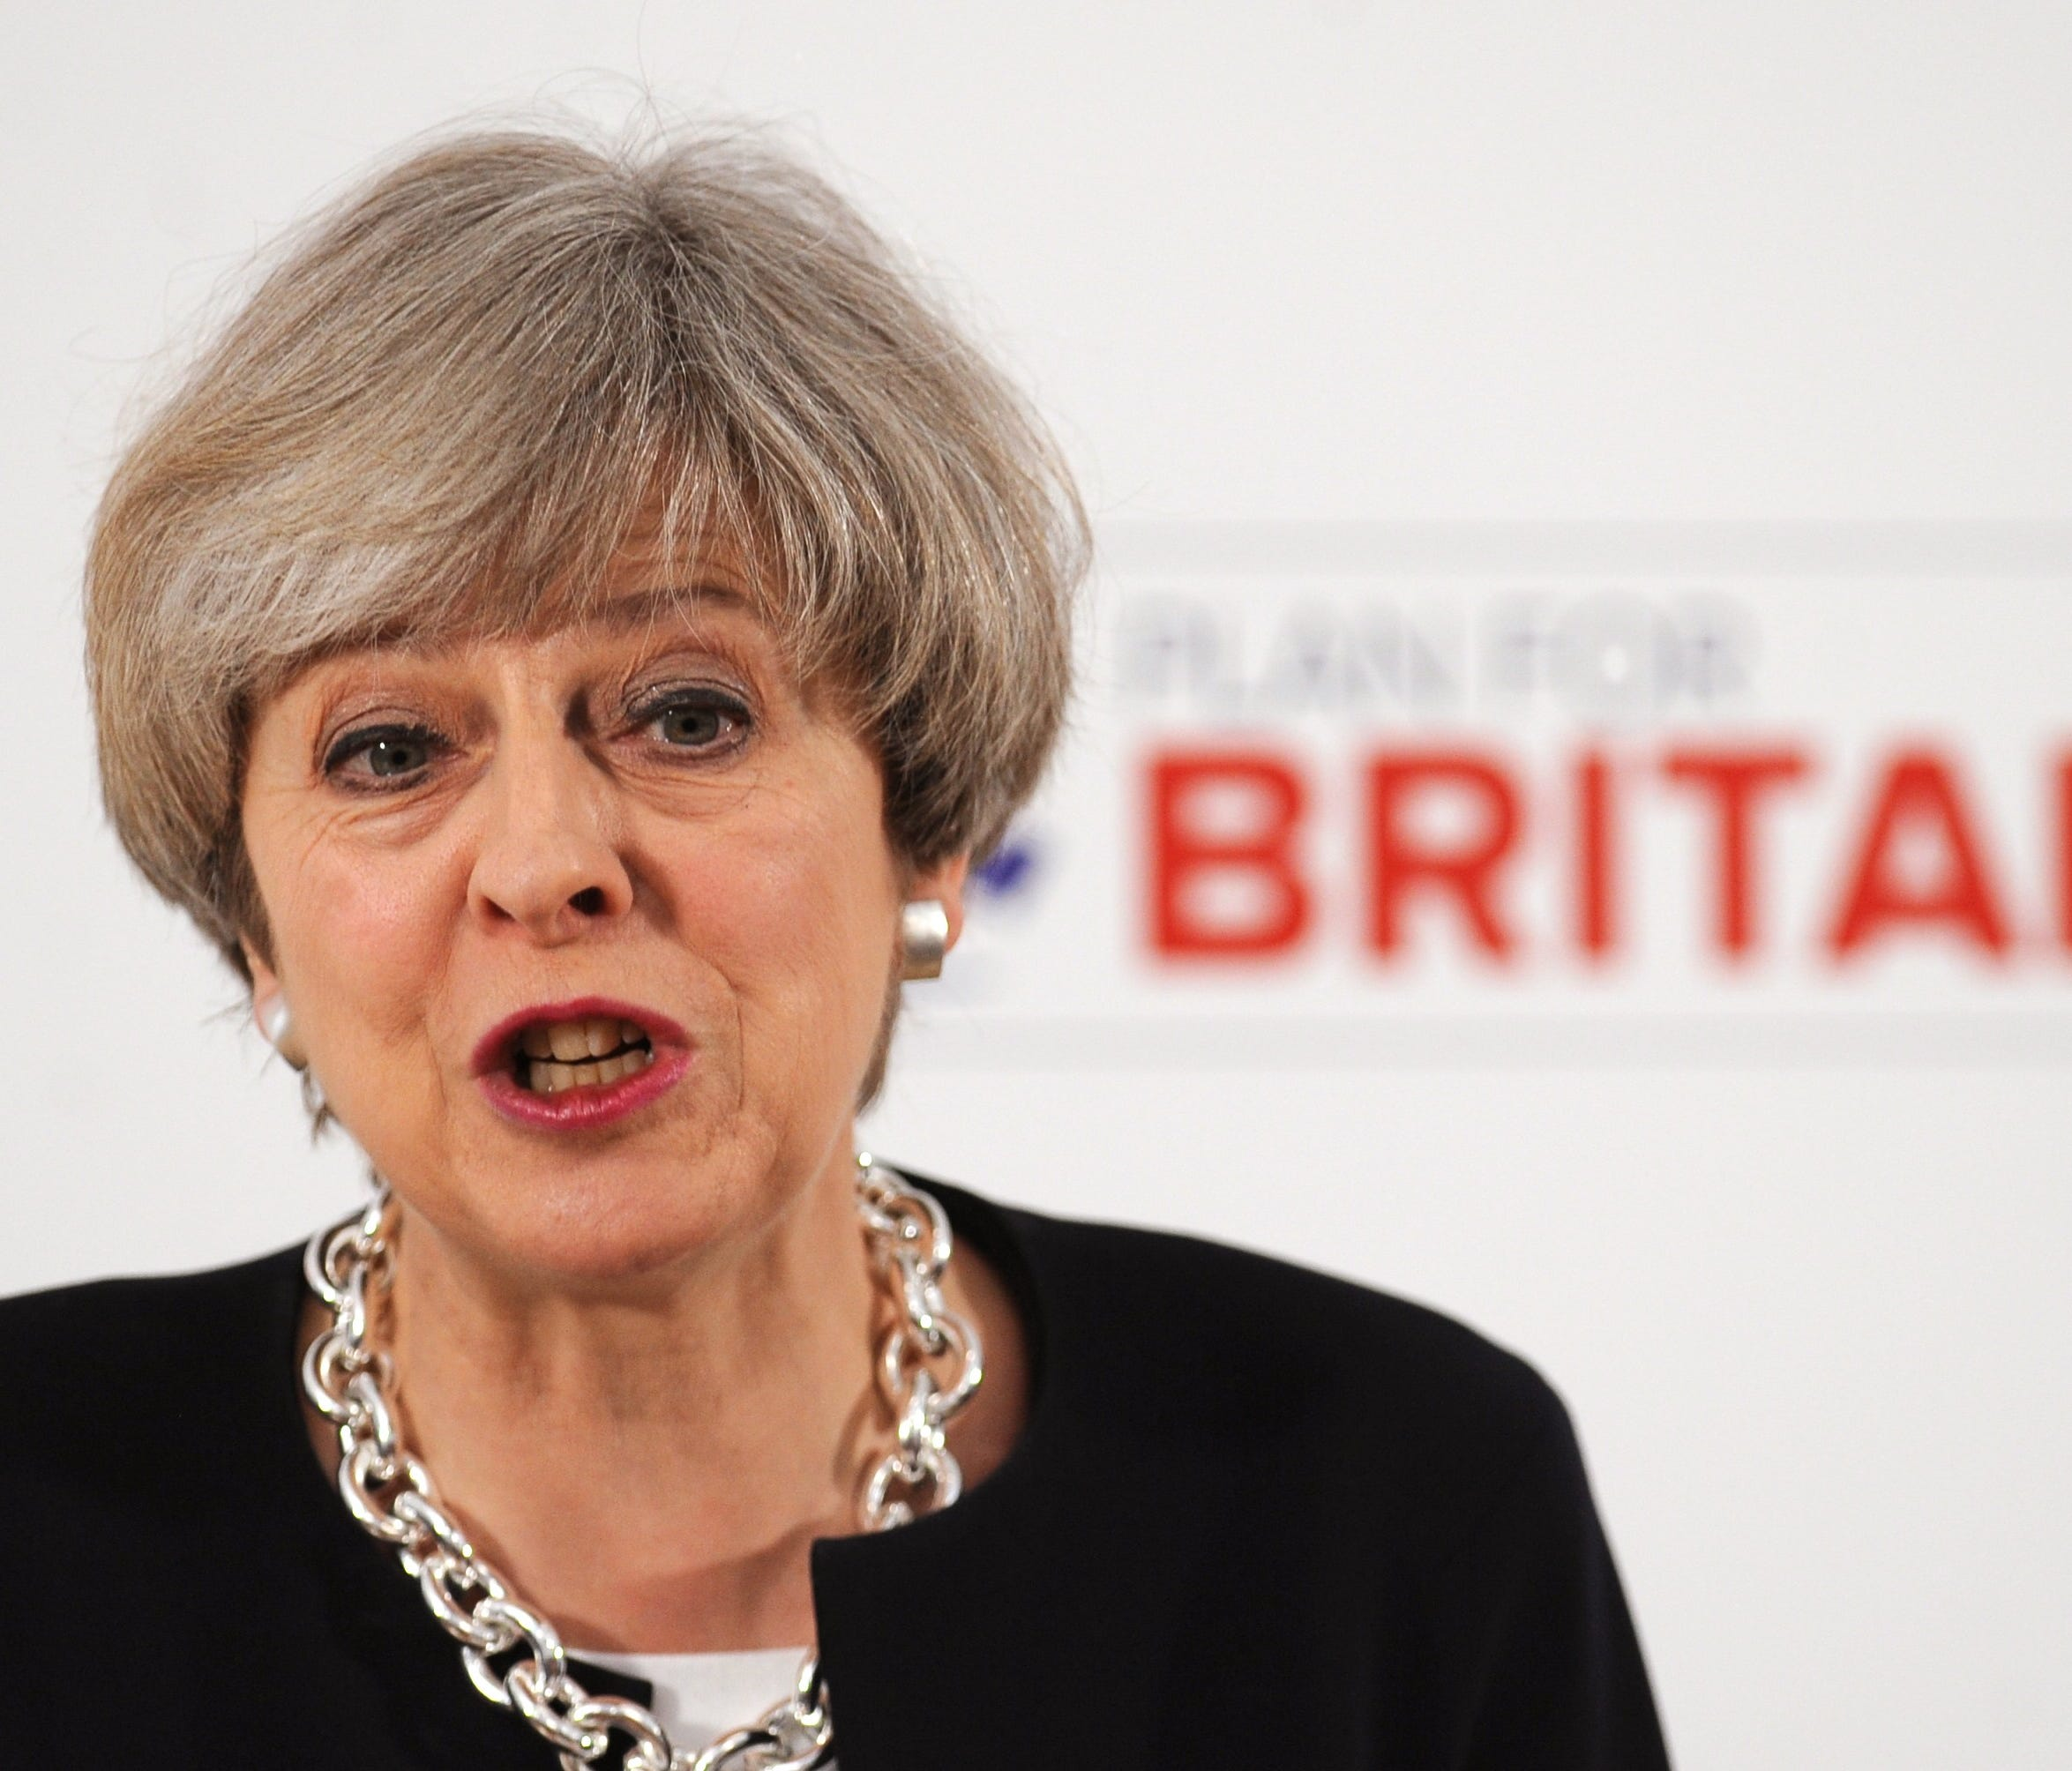 British Prime Minister Theresa May speaks during the launch of the Conservative Party's Local Election campaign in Nottingham, Britain, 06 April 2017.